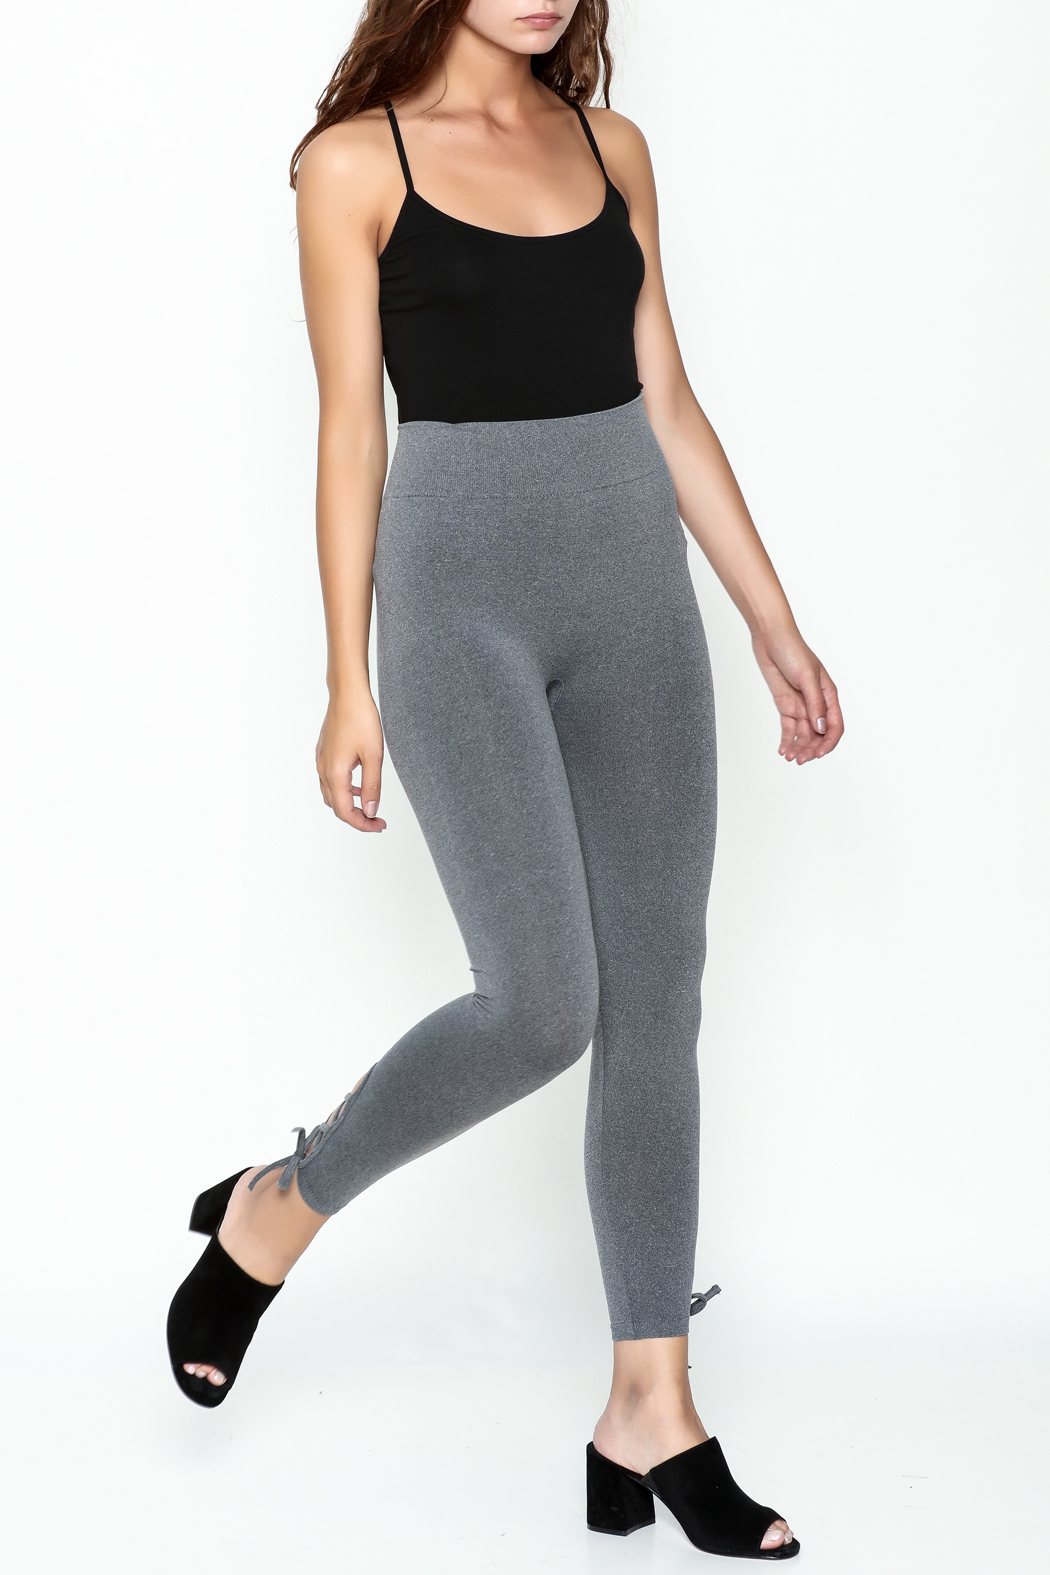 Private Label Criss Cross Leggings - Side Cropped Image